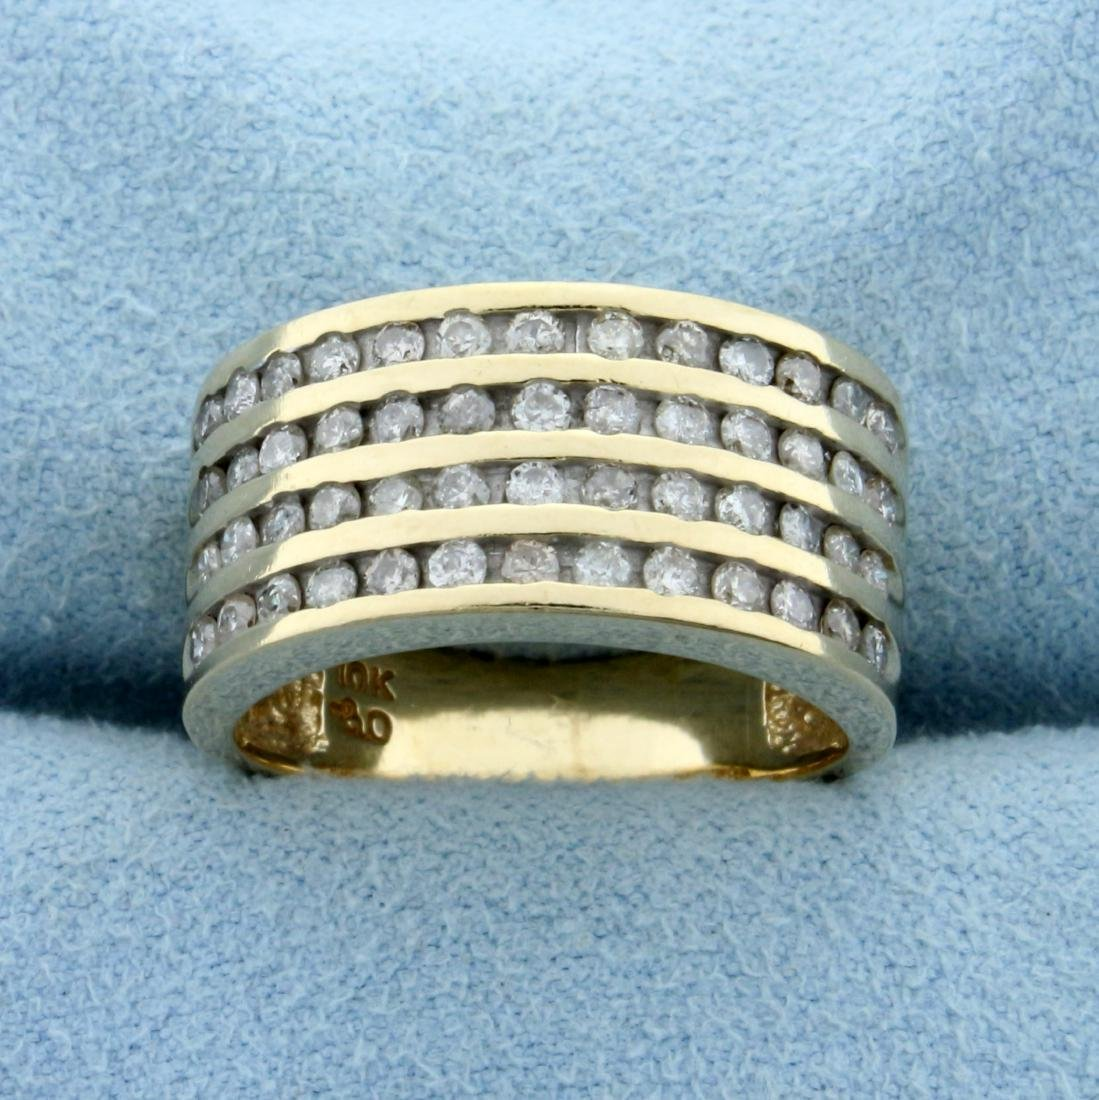 1/2ct TW Cannel Set Diamond Ring in 10K Yellow Gold